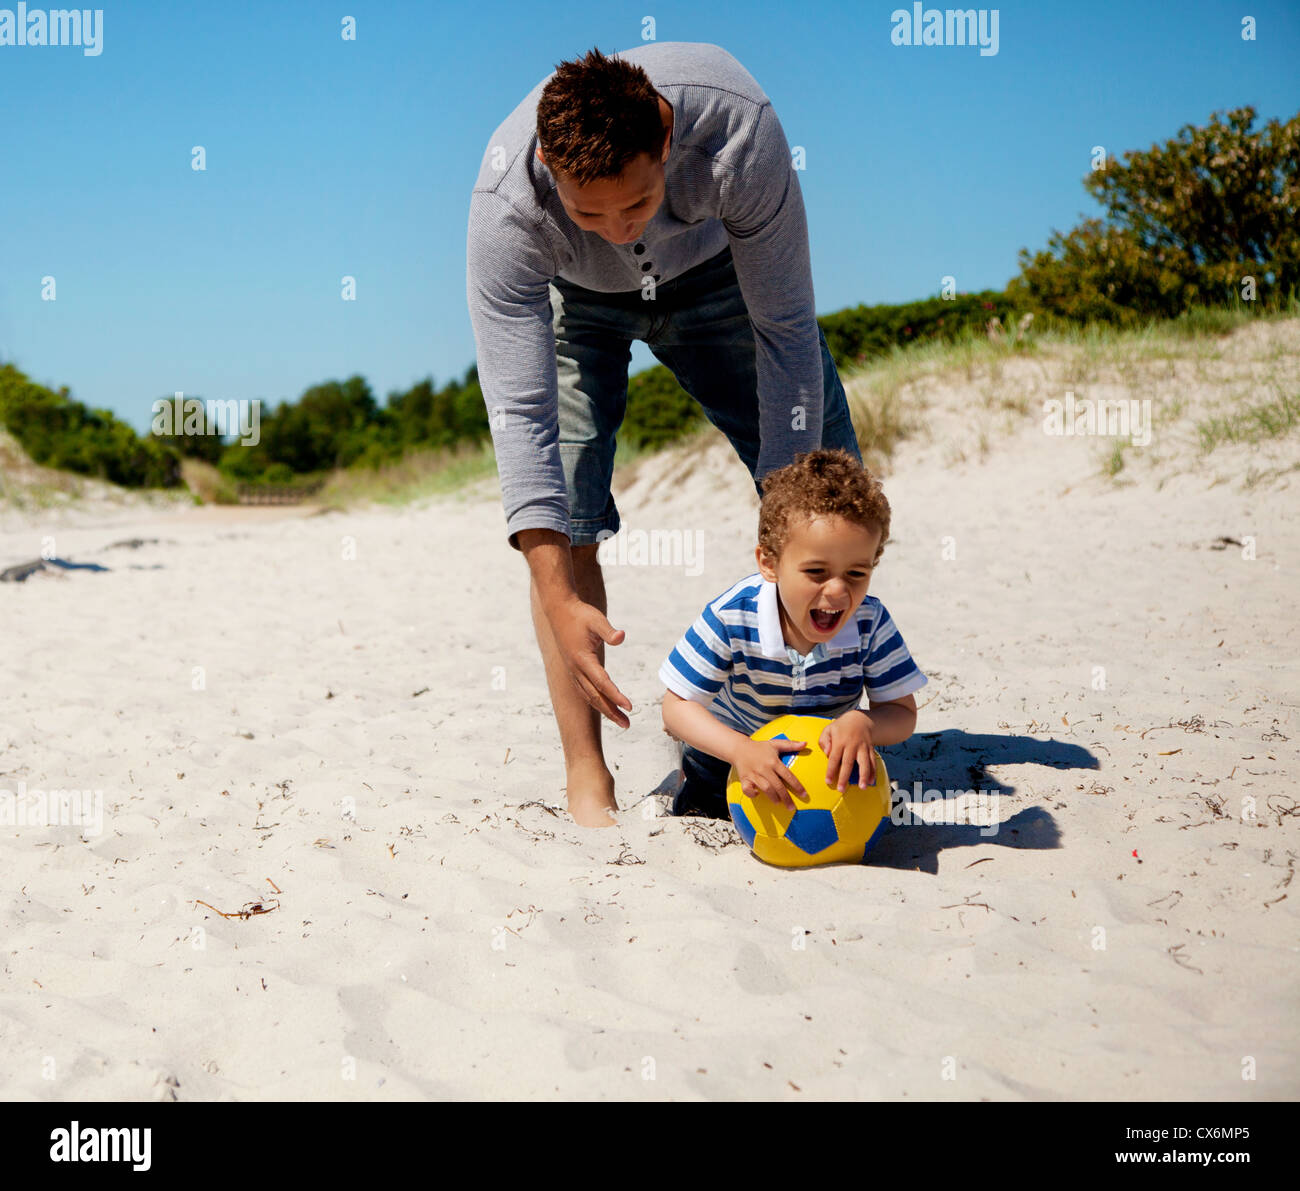 Excited kid grabs the ball as he plays a soccer game with his father - Stock Image